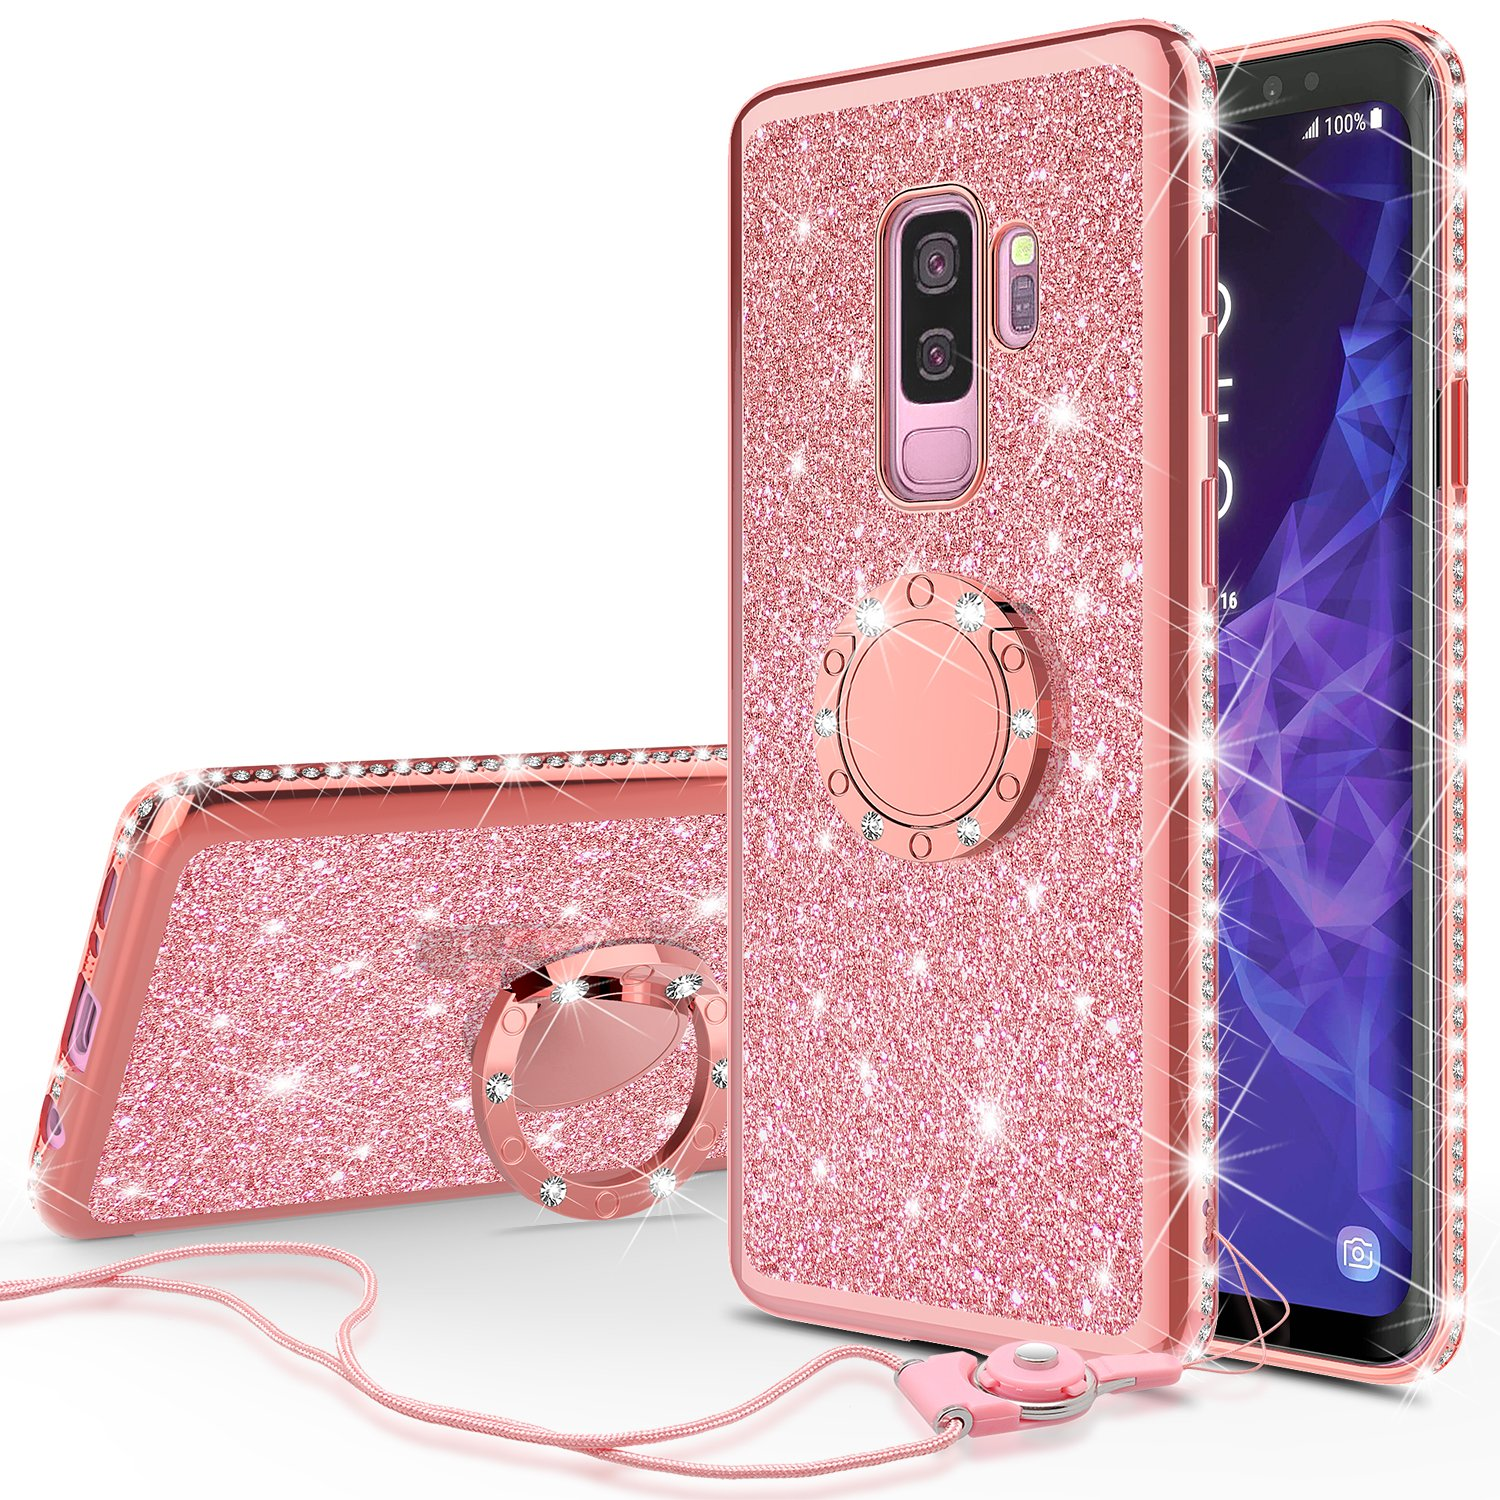 Samsung Galaxy S9 Plus Case, SM-G965U Case, Glitter Bling Rhinestone Crystal Luxury TPU Finger Style Ring Kickstand Cover Cases - Rose Gold